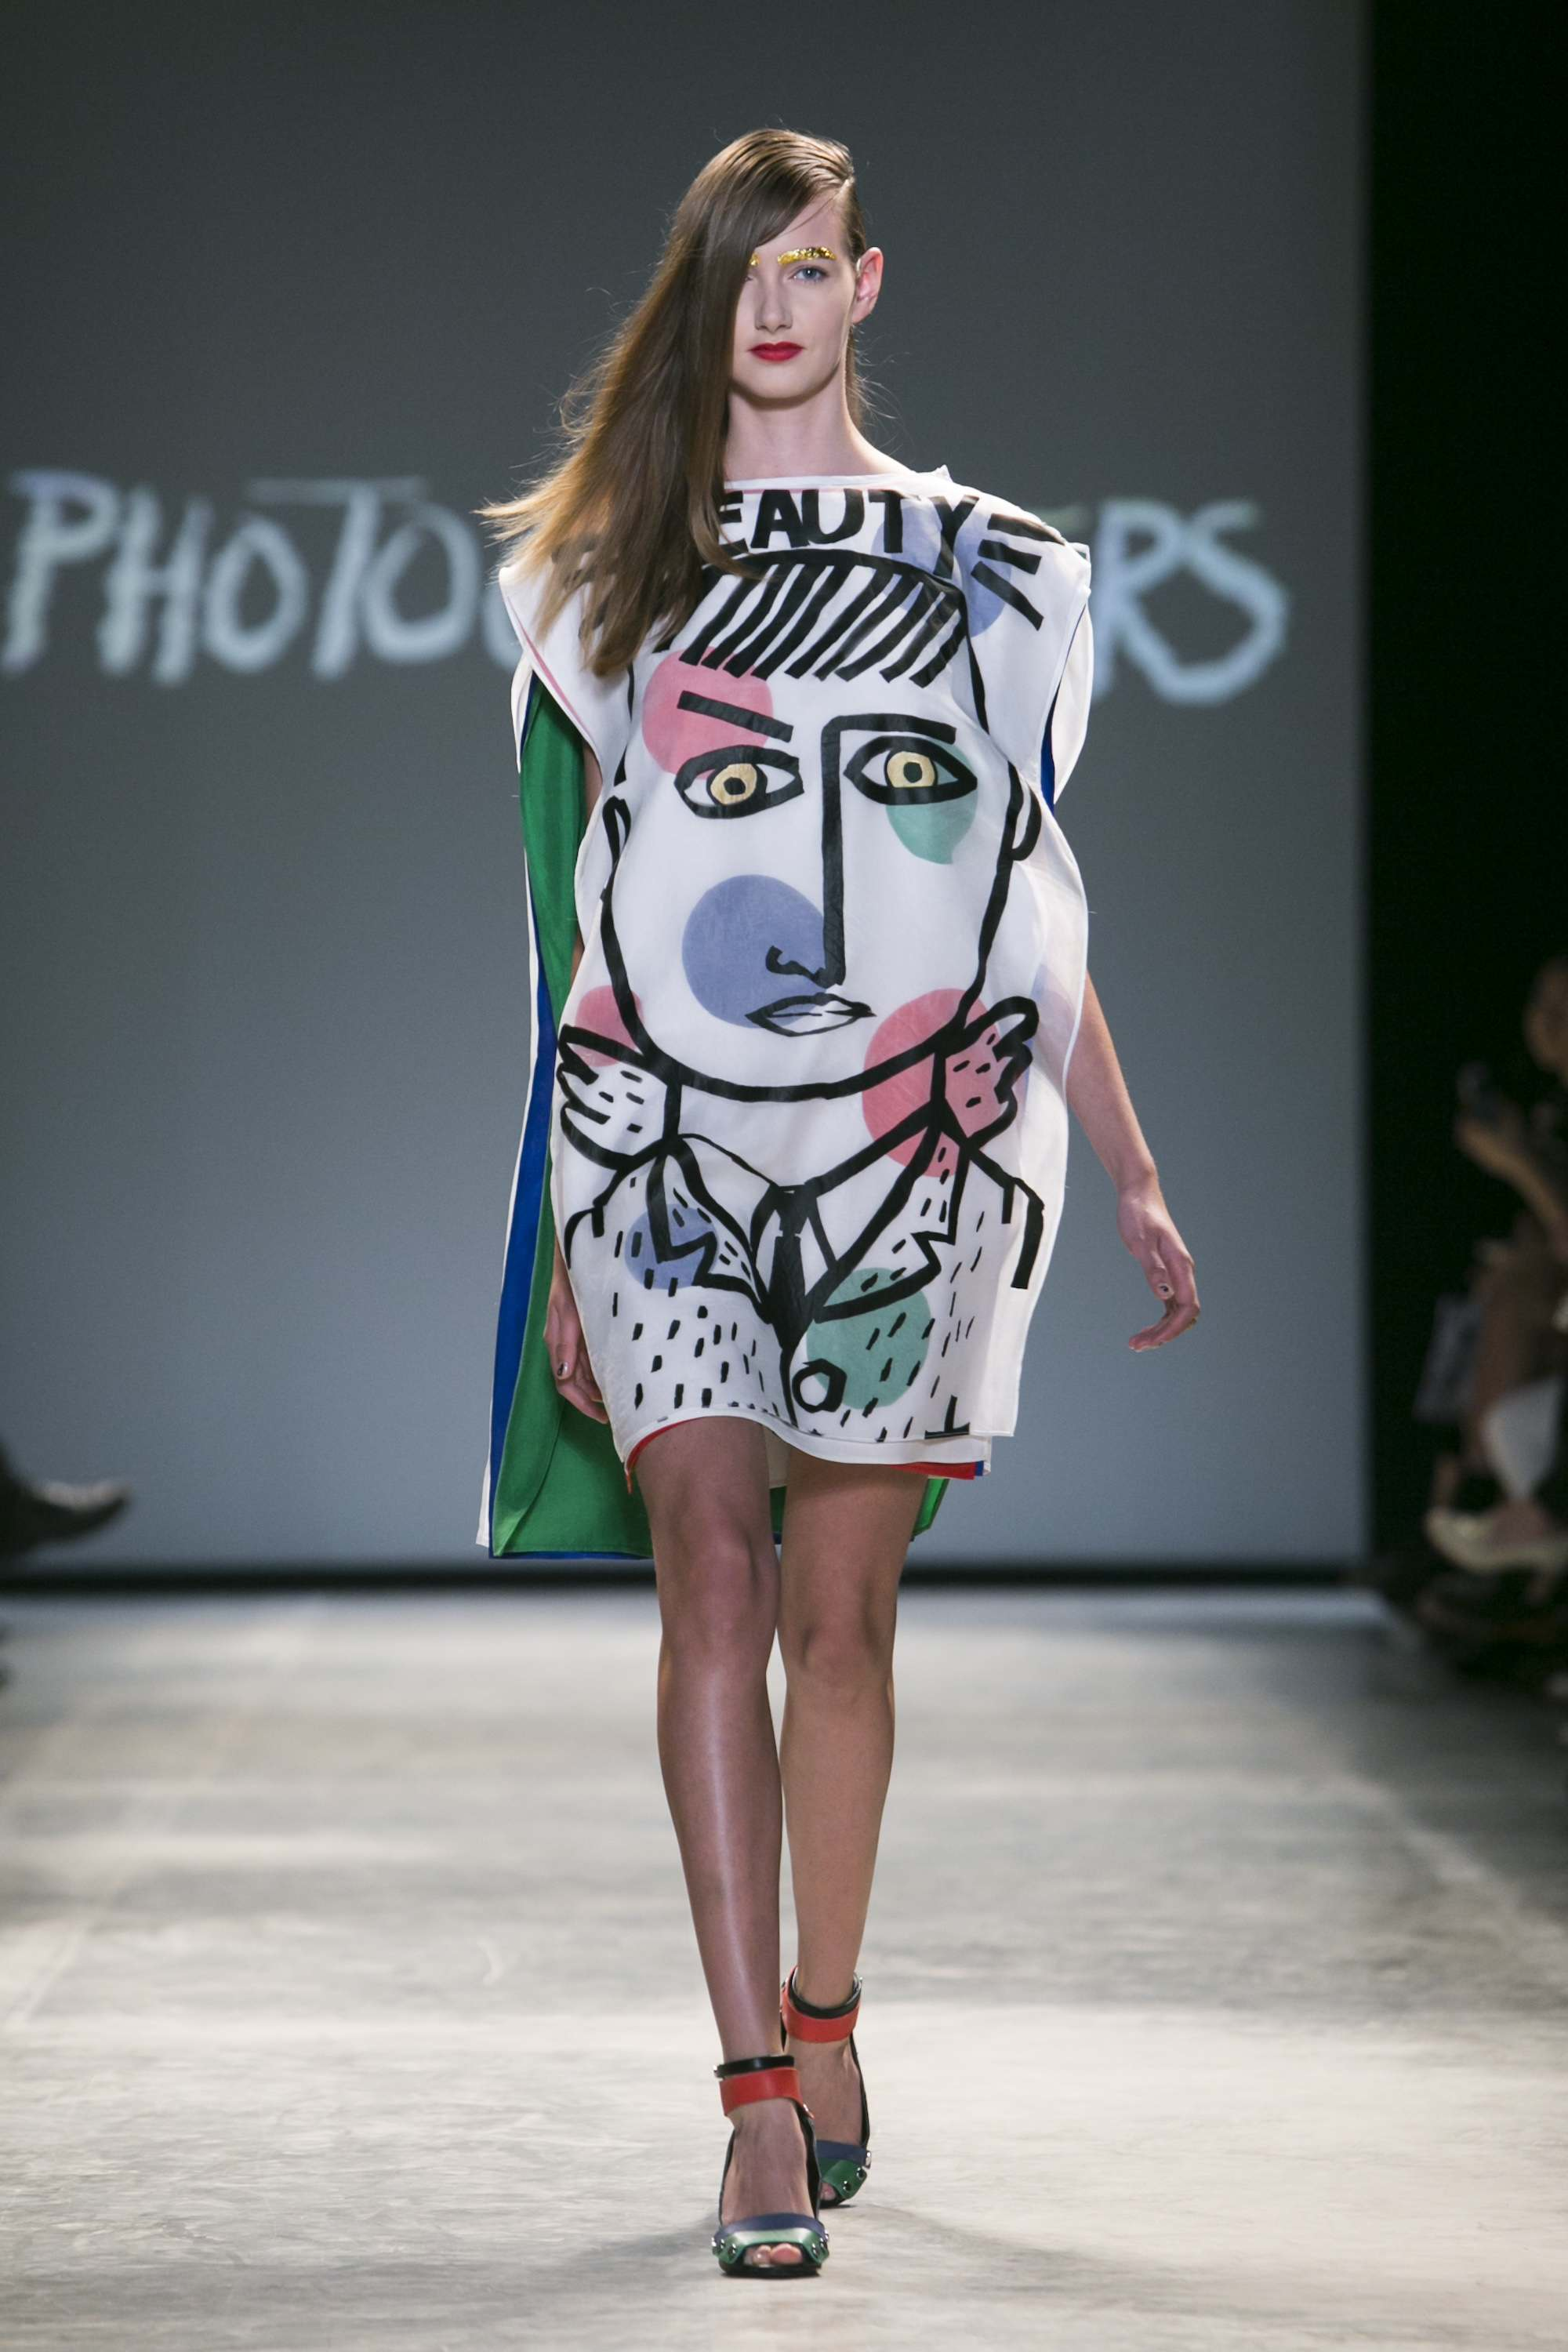 Jean-Charles de Castelbajac, Ready to Wear, Collection printemps/été 2014, Paris